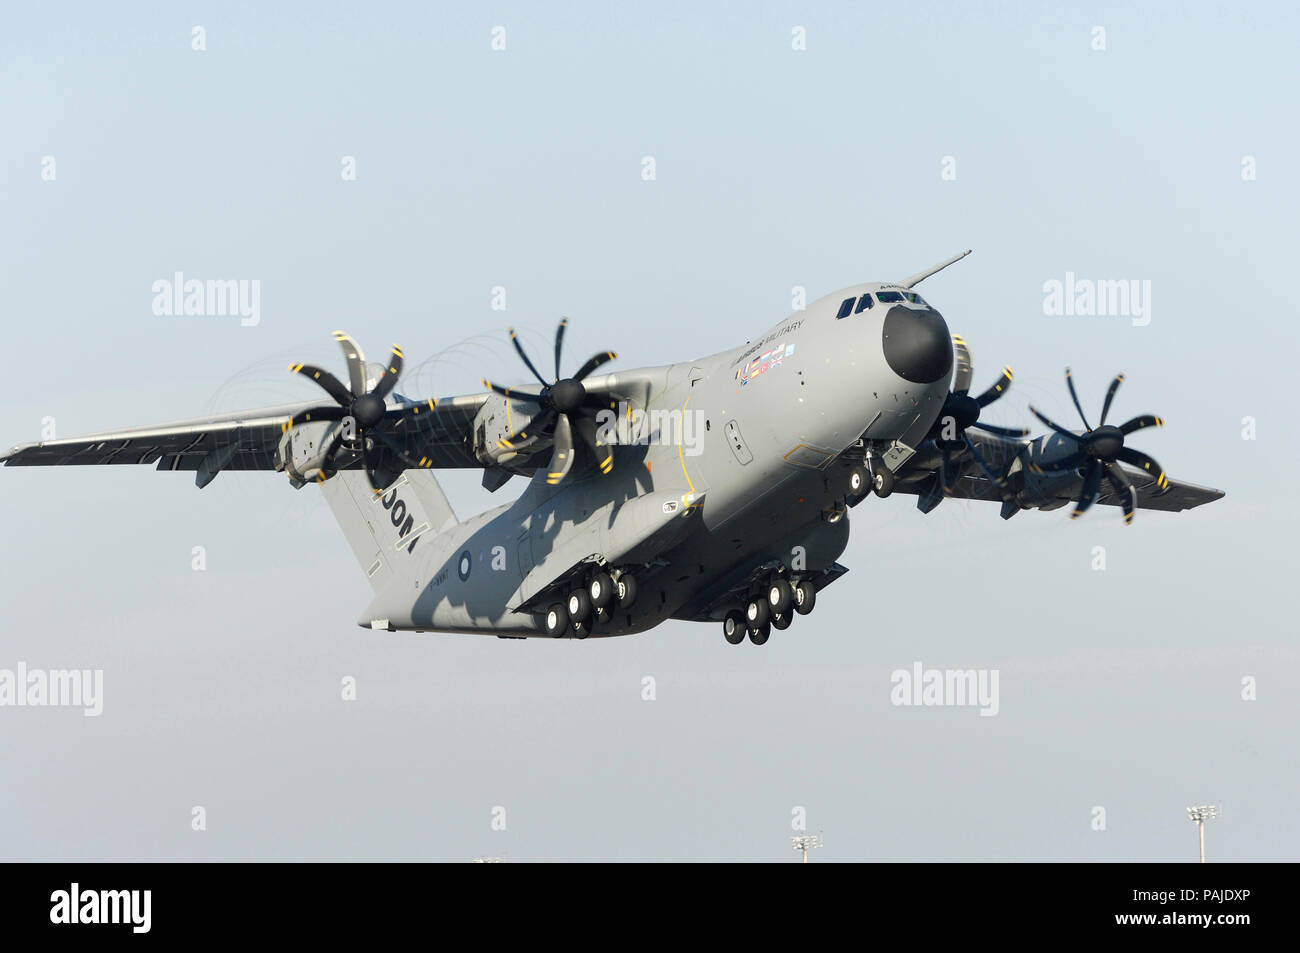 the first-flight take-off of the first Airbus A400M flight-test aircraft at Seville San Pablo 11th December 2009 Stock Photo